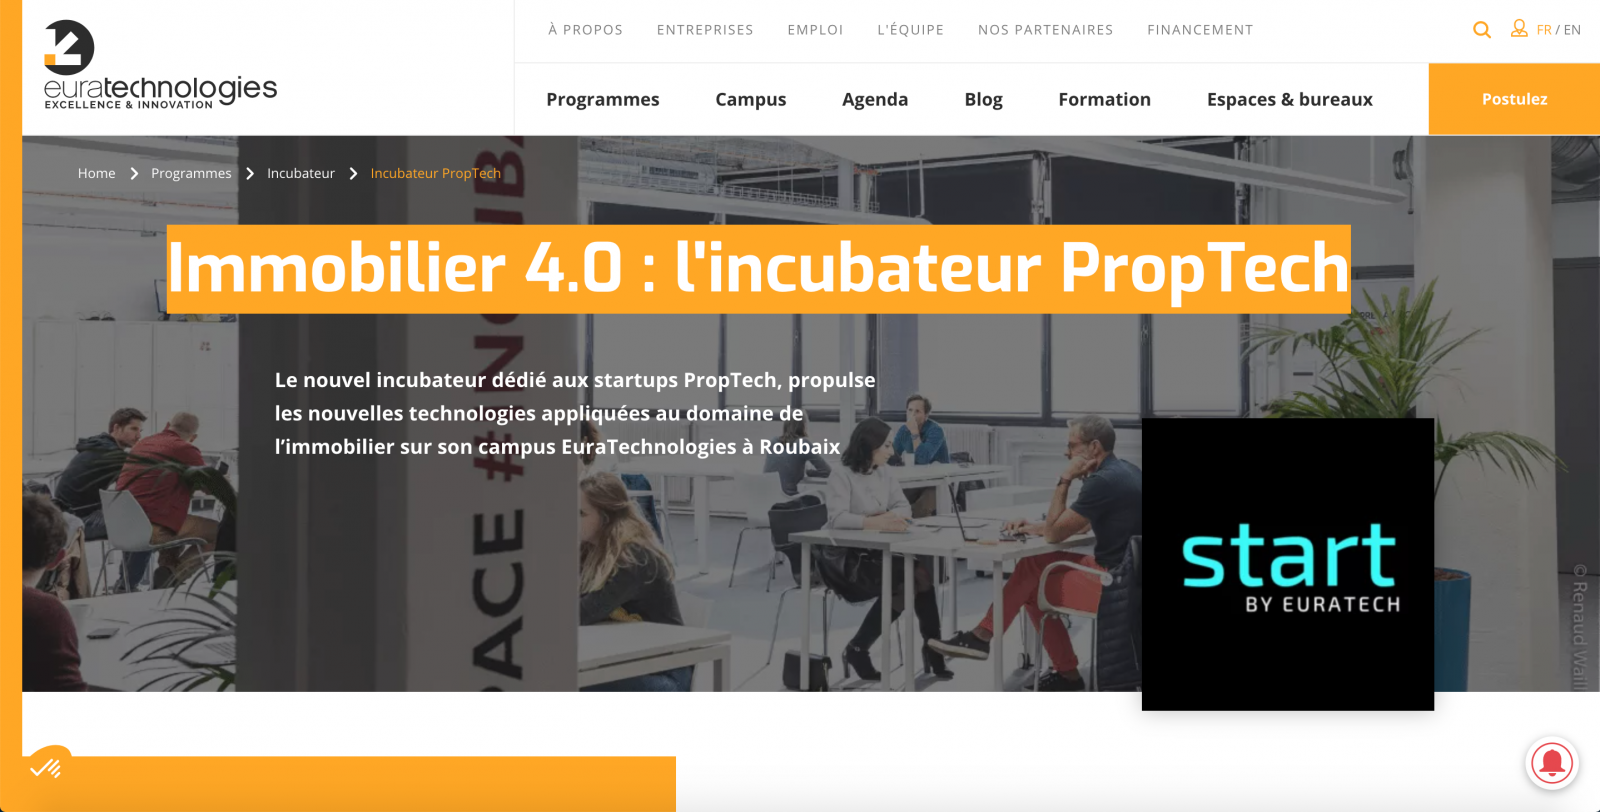 Euratechnologies Proptech Startup Immobilier